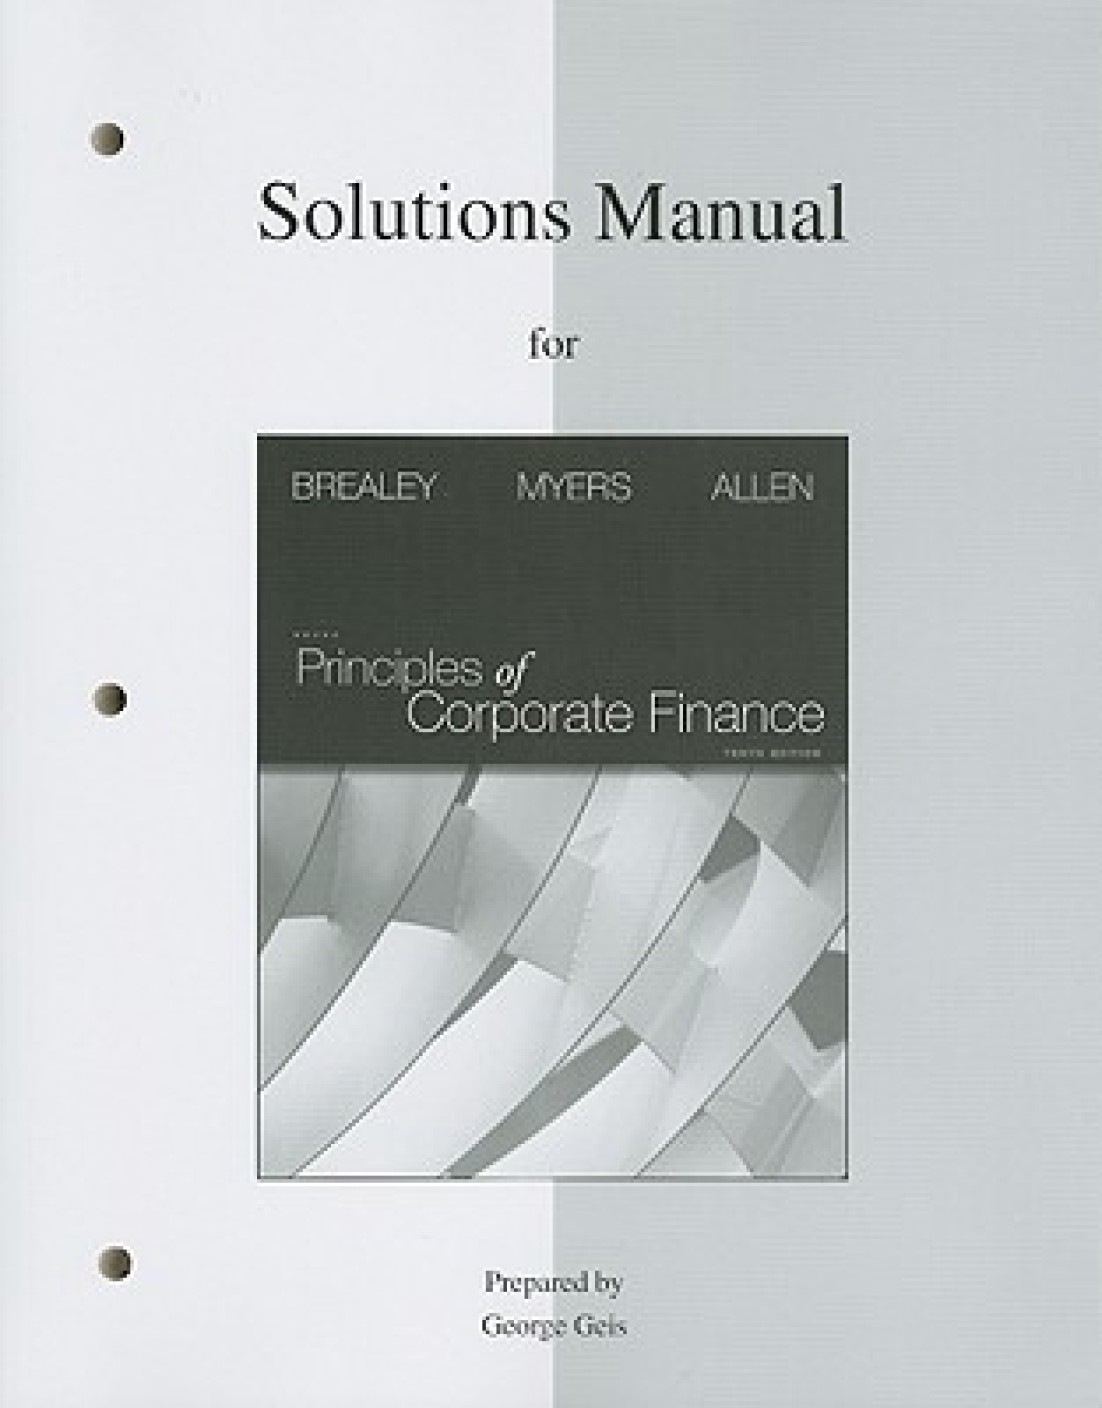 Brealey. Myers. Allen Chapter 17 Solution.pdf